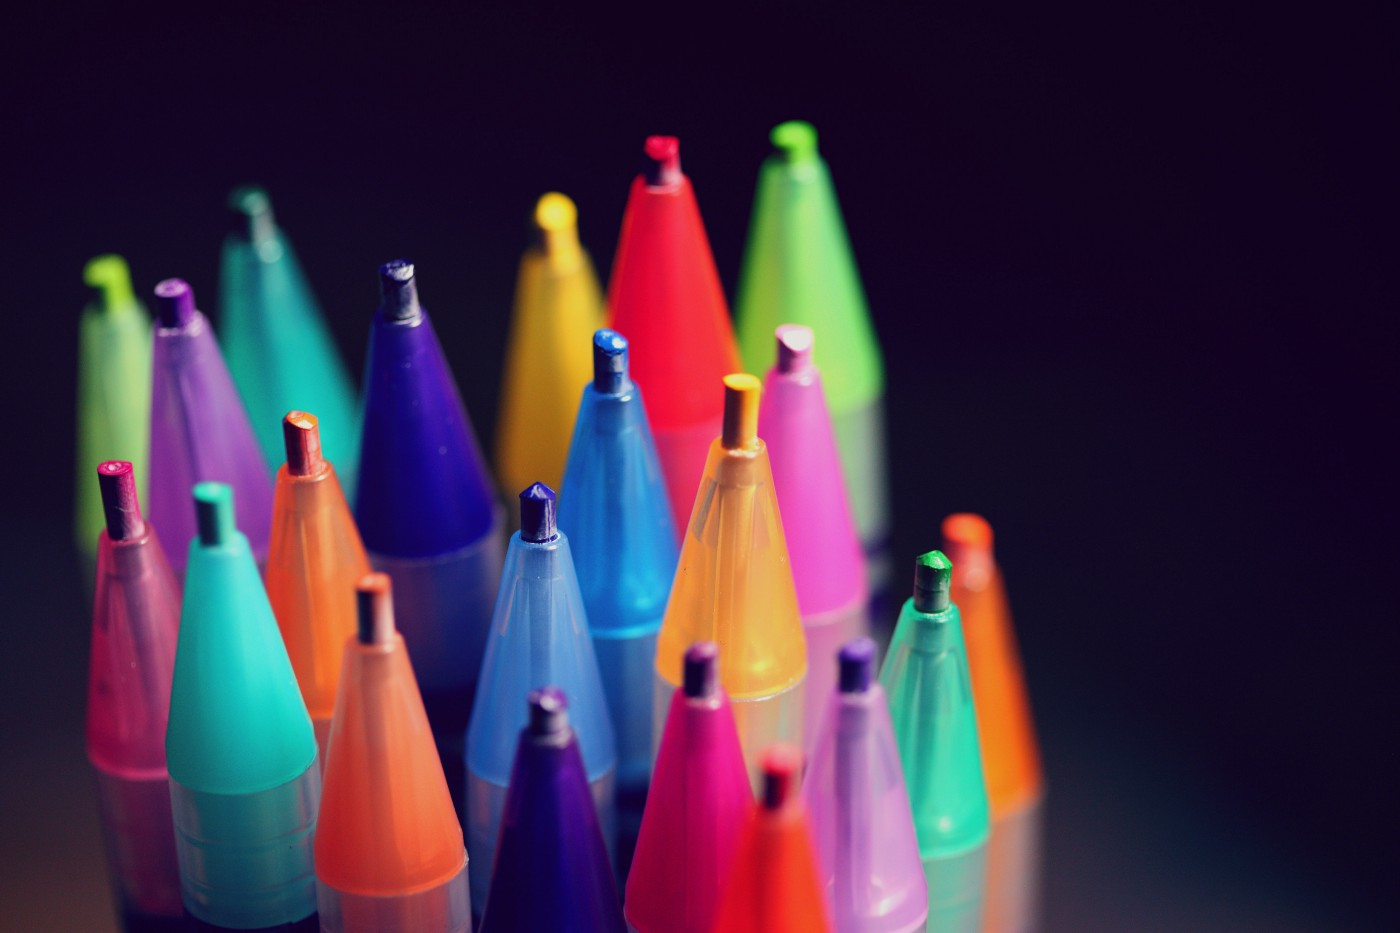 Many colored pencils. Photo: Sharon McCutcheon